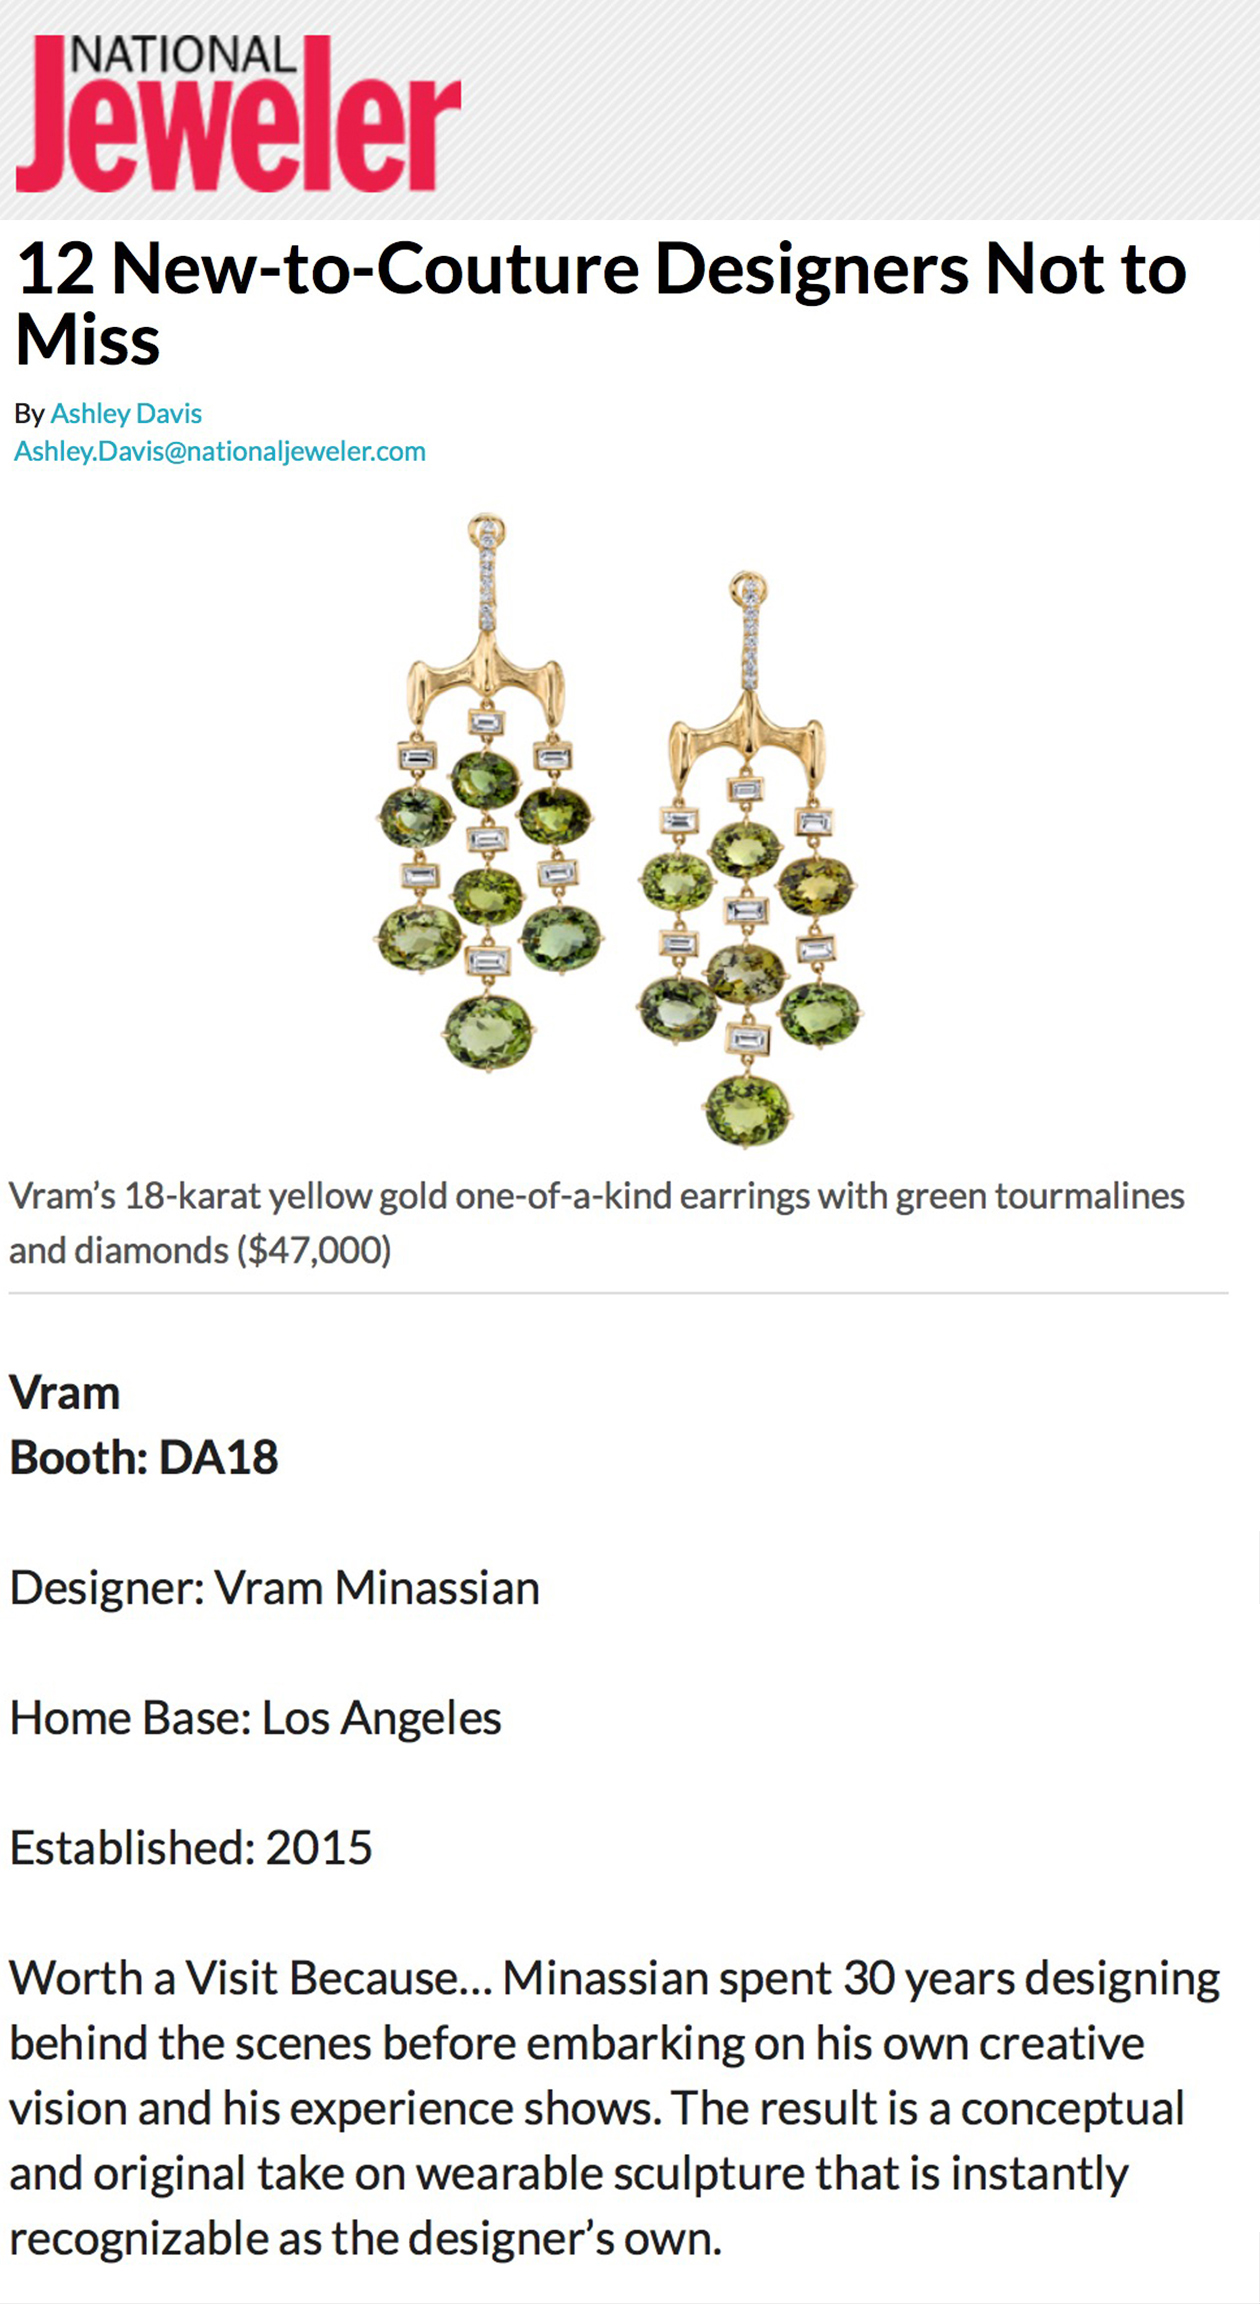 VRAM National Jeweler May 2018 Couture Show.jpg